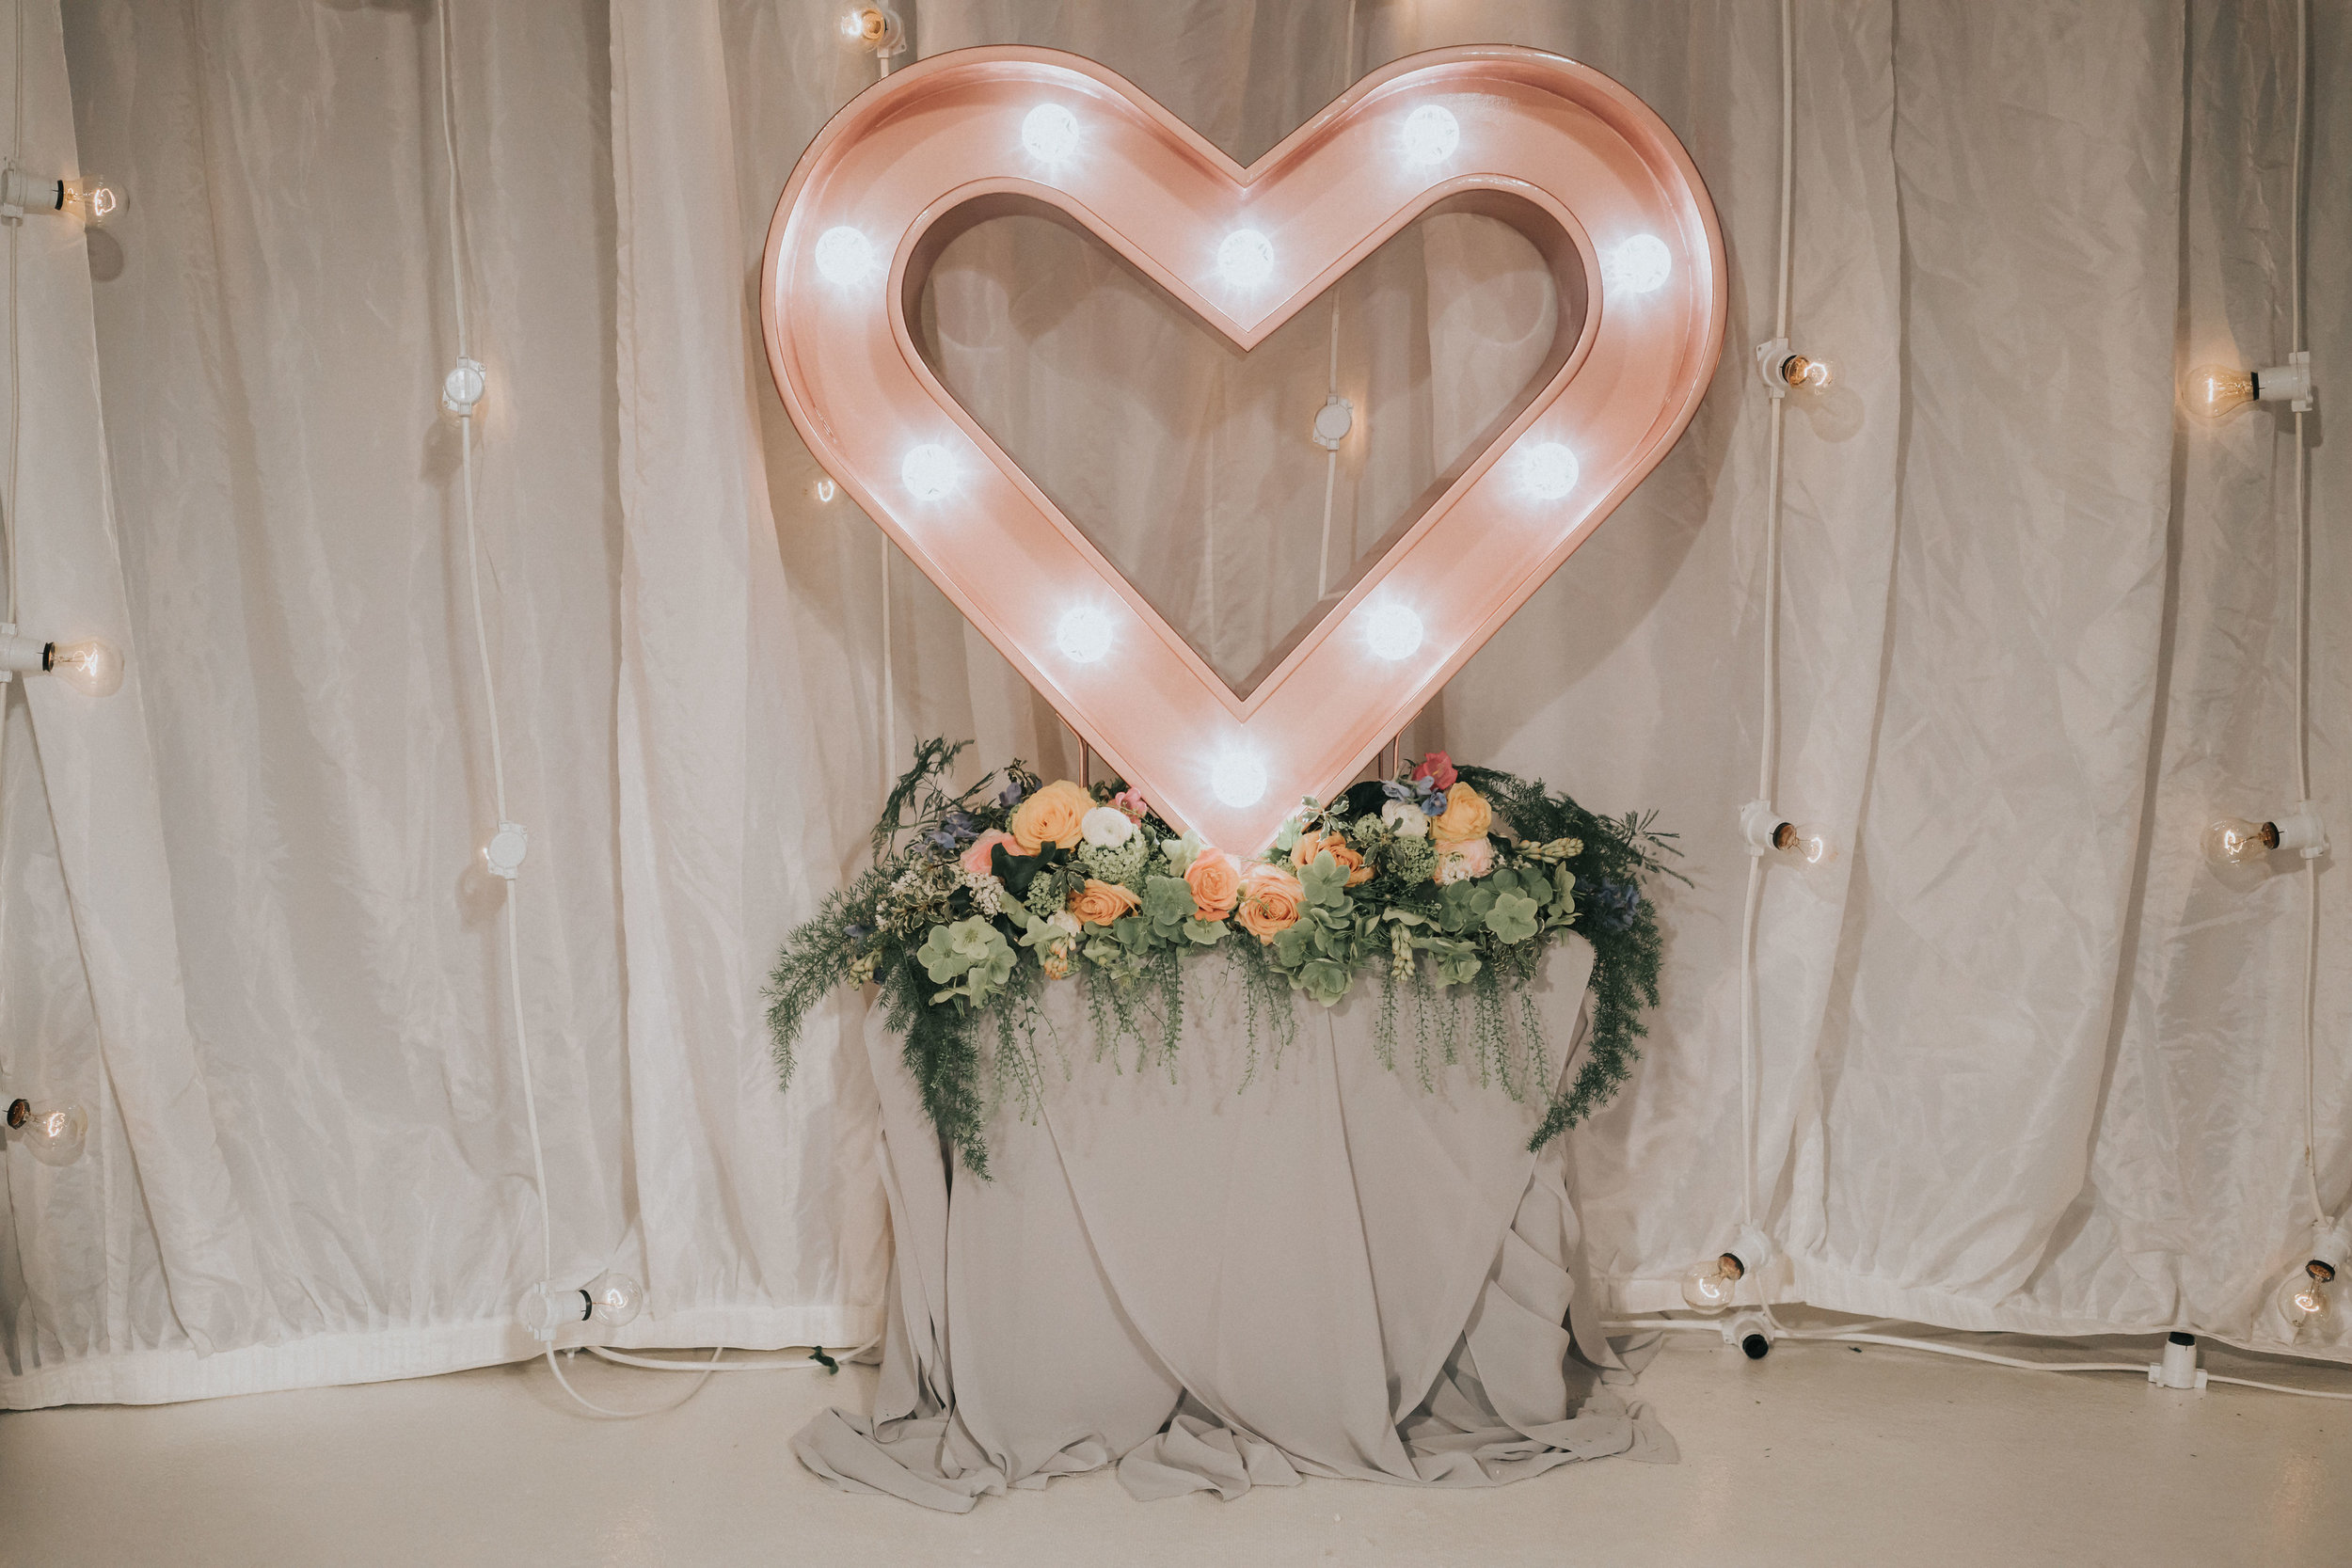 "- Stacy Loves… ""Lola our rose gold love heart. She was one of the first products I ever designed and brought to life and is still to this day one of our most popular products, as she looks classically beautiful in any setting. I still get the wow factor with her when our real life brides send us their images."""